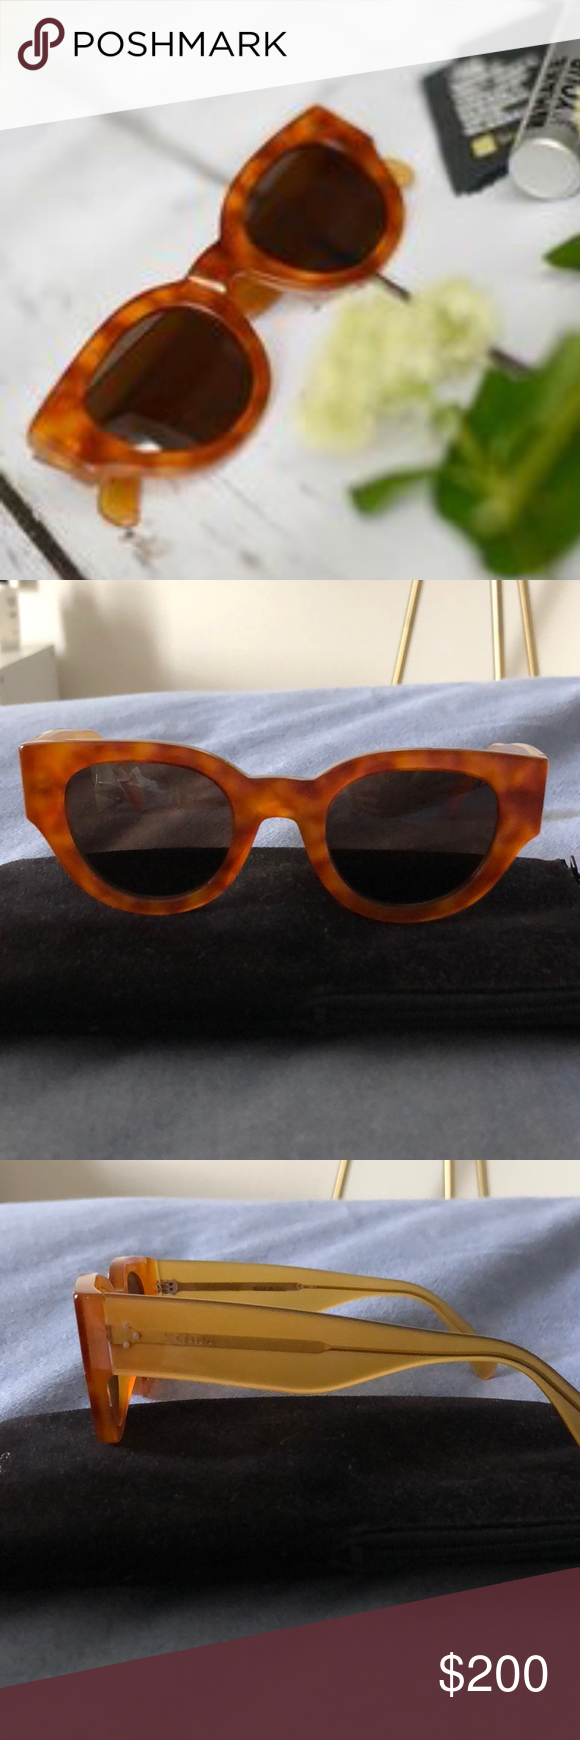 633b9e6f5818 Celine Sunglasses Celine blonde tortoise sunglasses with case. Purchased in  2015-no visible signs of wear except slightly stretched but could easily be  ...